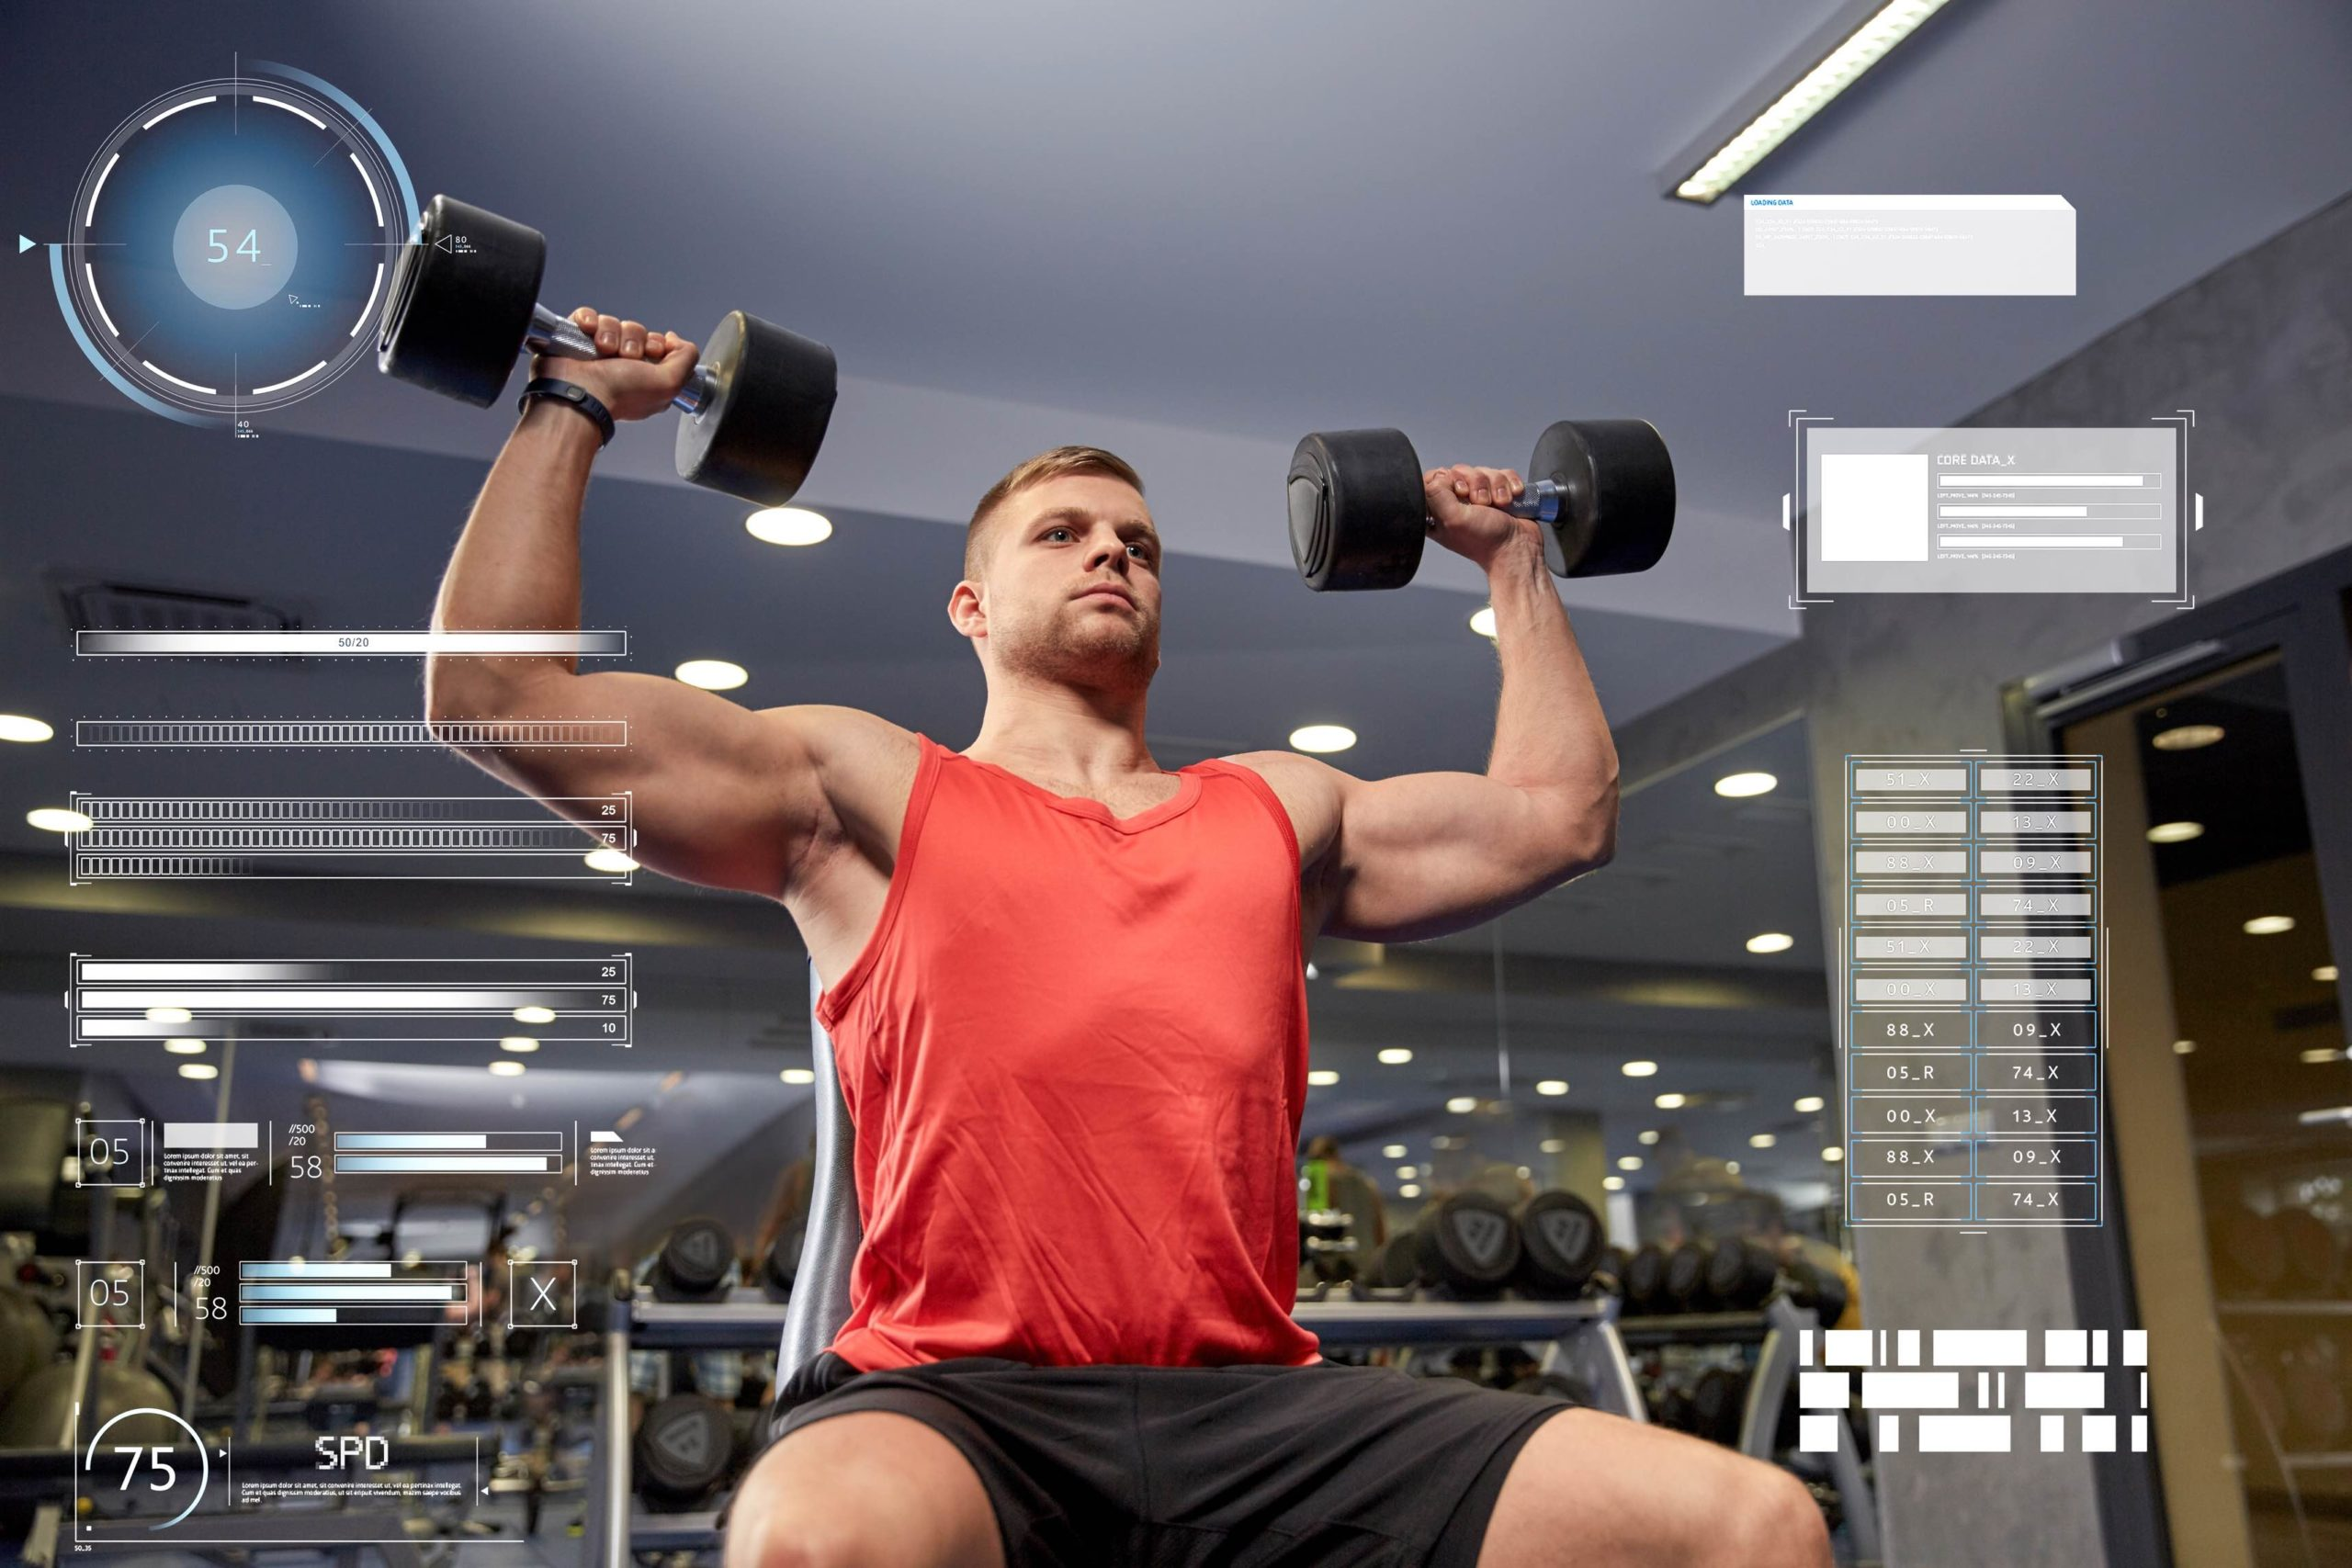 Intra-set rest periods for effective strength training